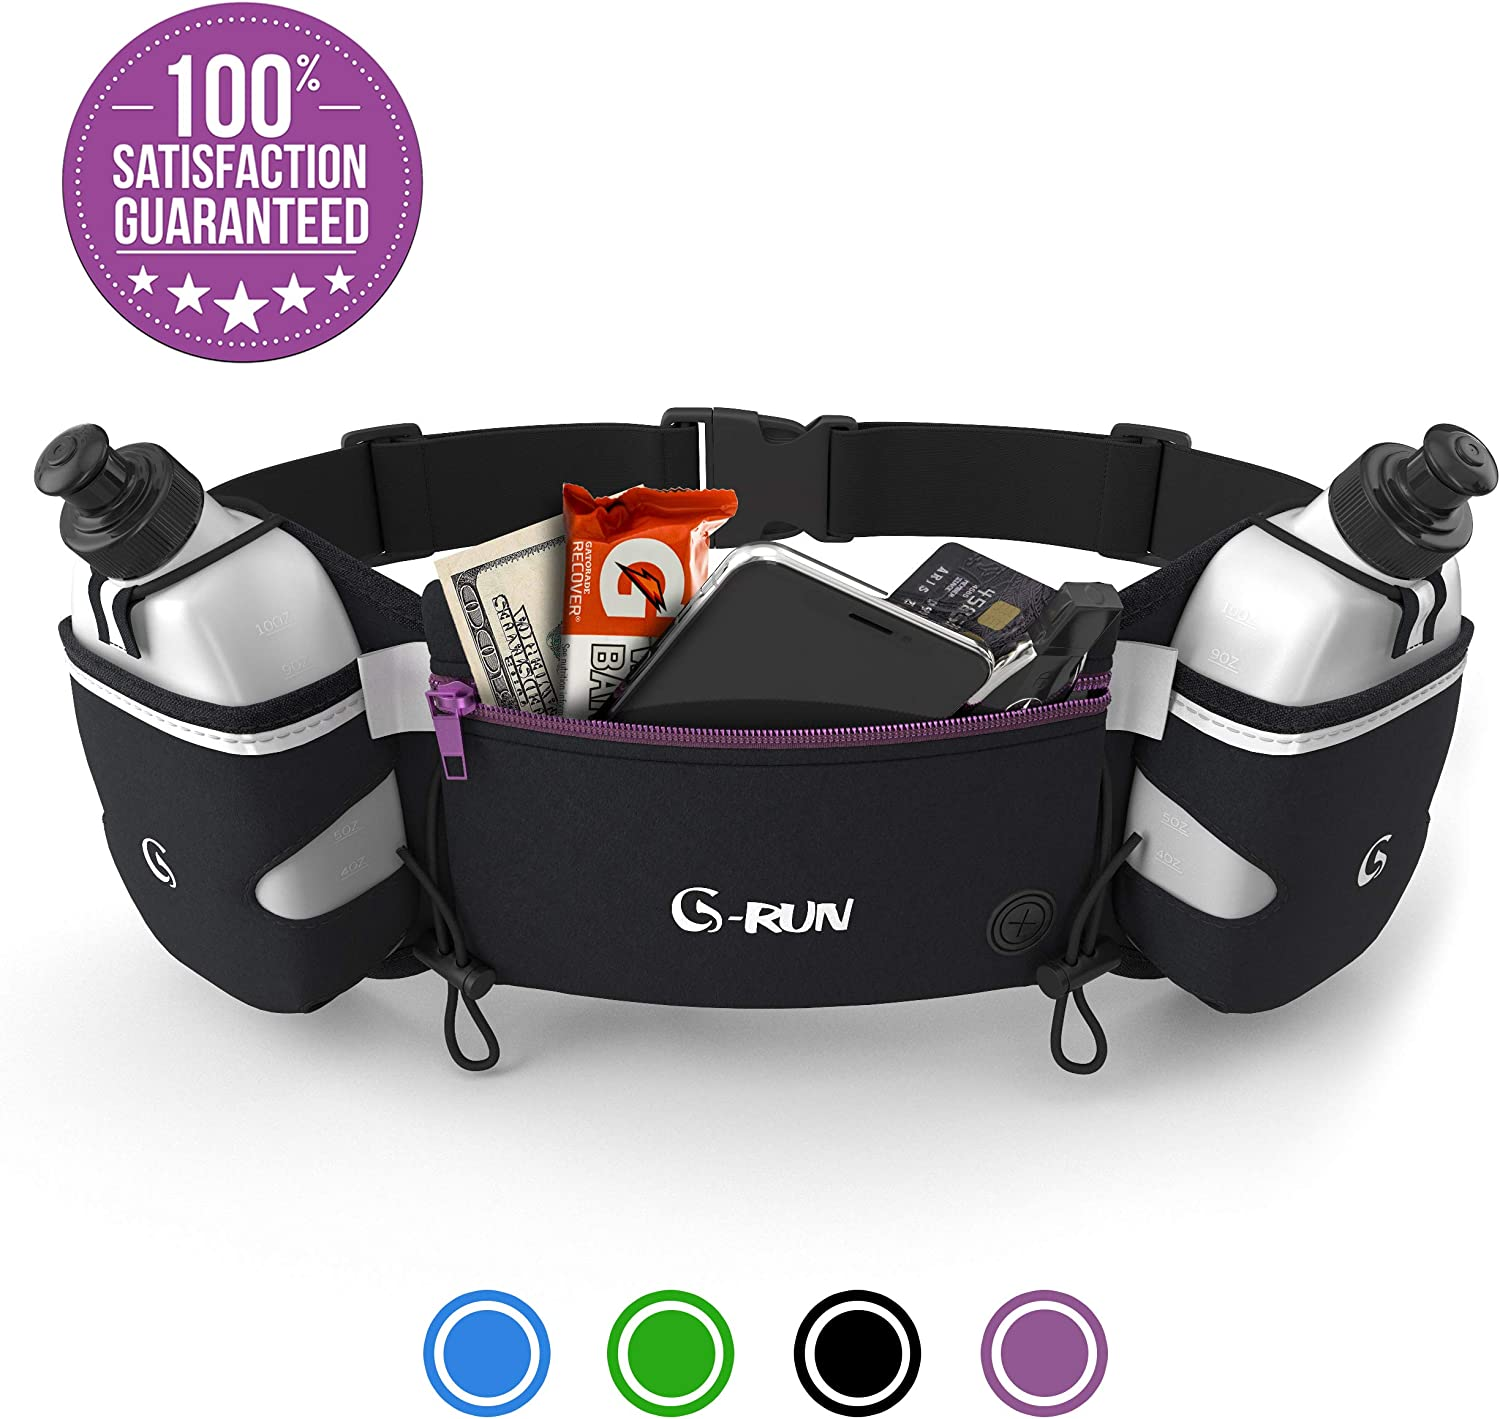 G-RUN Hydration Running Belt with Bottles – Water Belts for Woman and Men – iPhone Belt for Any Phone Size – Fuel Marathon Race Pack for Runners – Jogging Waist Pouch